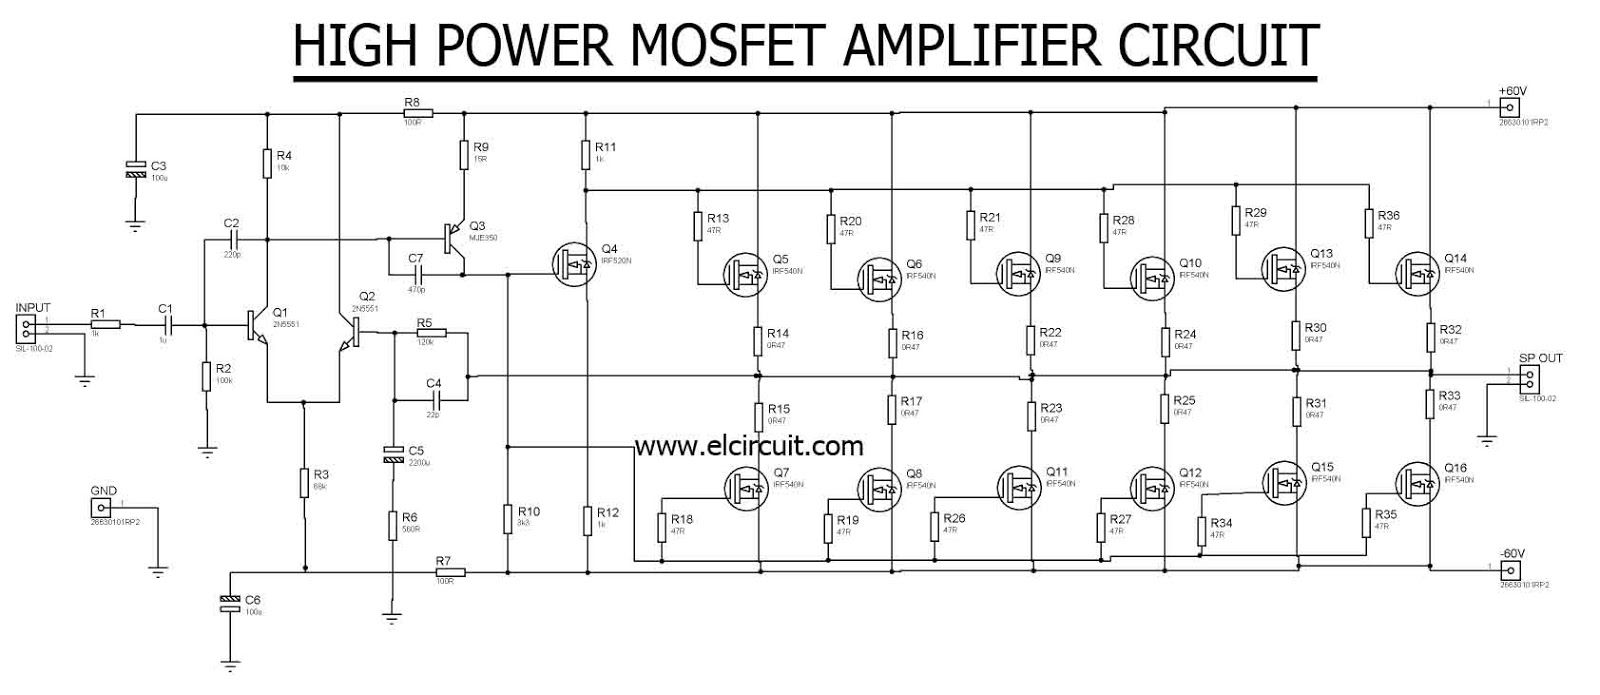 Circuit Power Diagram Amplifier Audio10000 Diy Enthusiasts Wiring 25 Watt Using Tda2009 Automotive Block U2022 Rh Carwiringdiagram Today